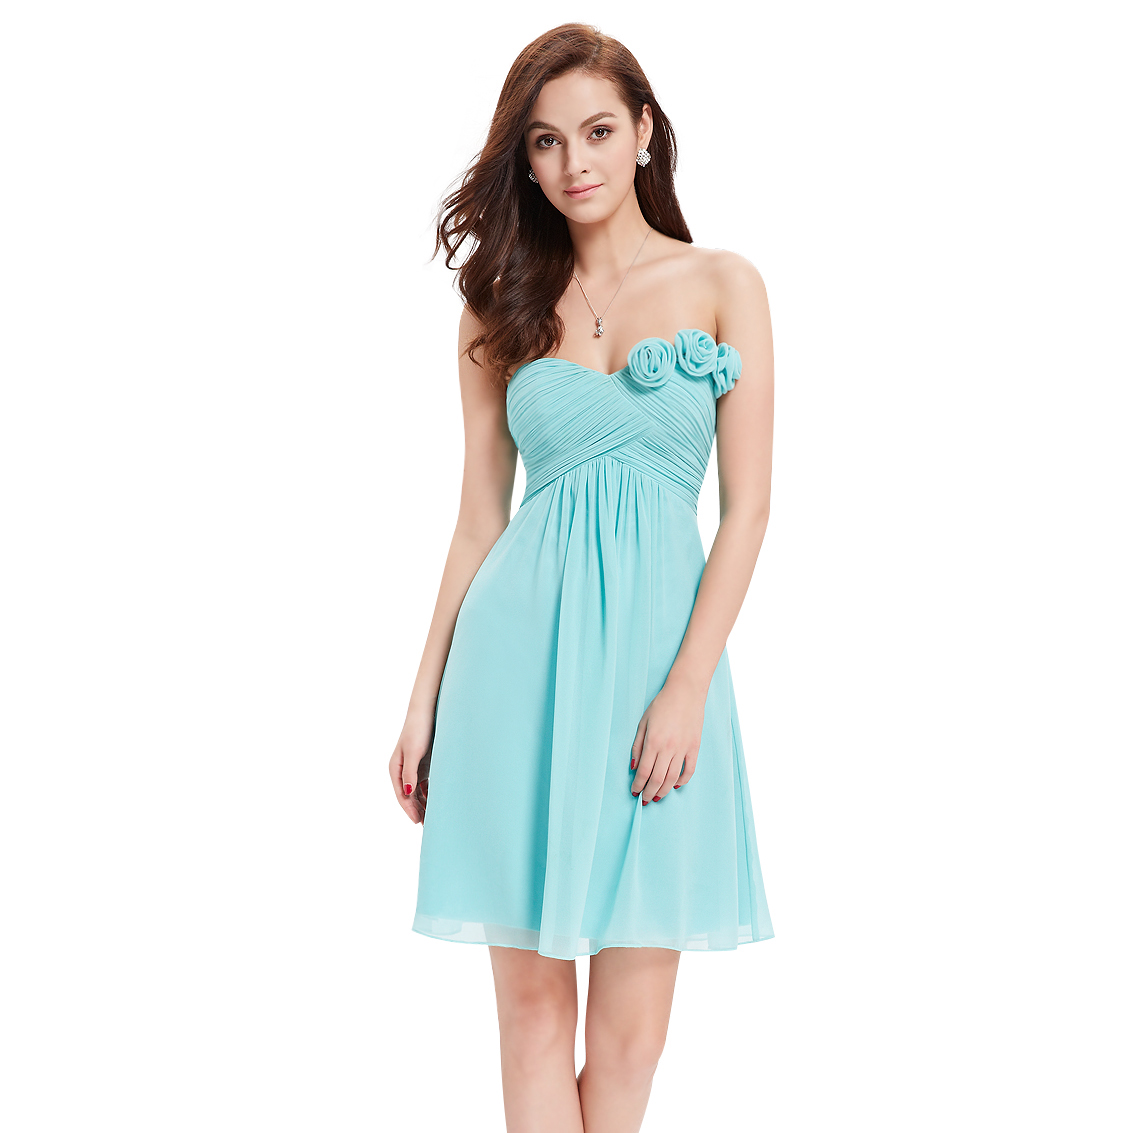 Ever-Pretty Ever Pretty Strapless Flower Ruffles Padded Elegant Chiffon Bridesmaid Dress 03543 at Sears.com